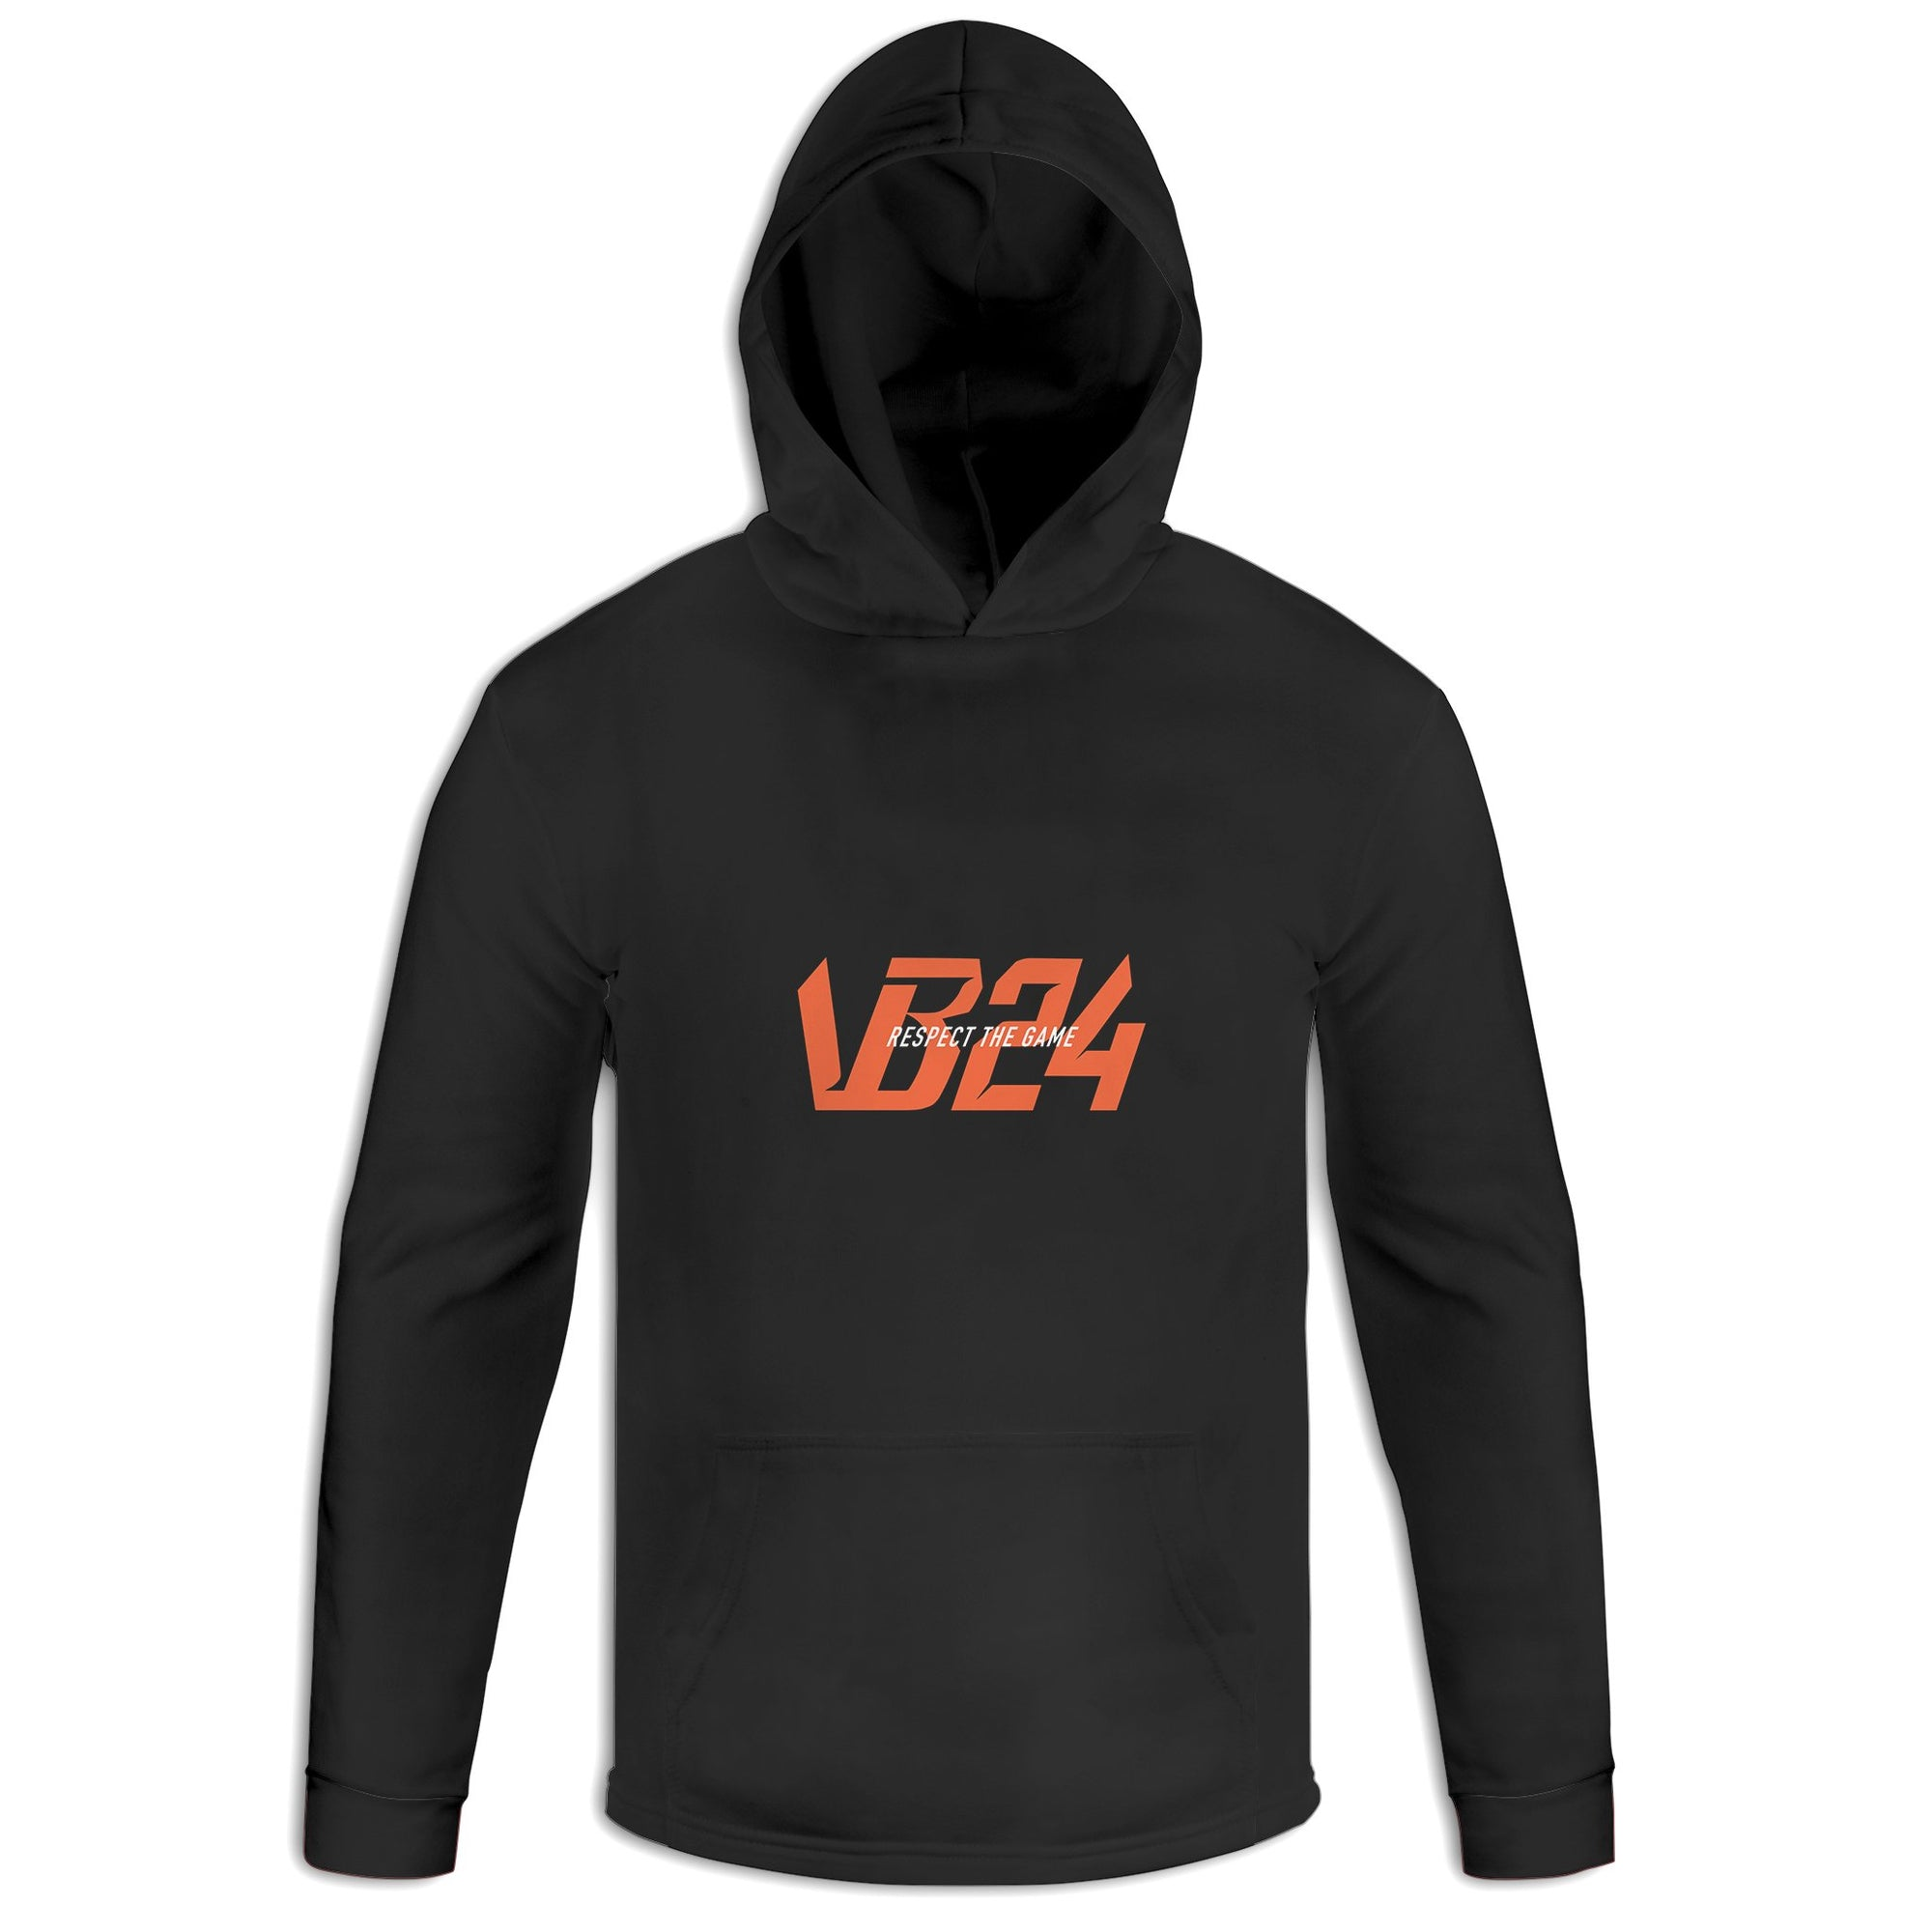 Respect The Game Hoodie | vonbellshop.com